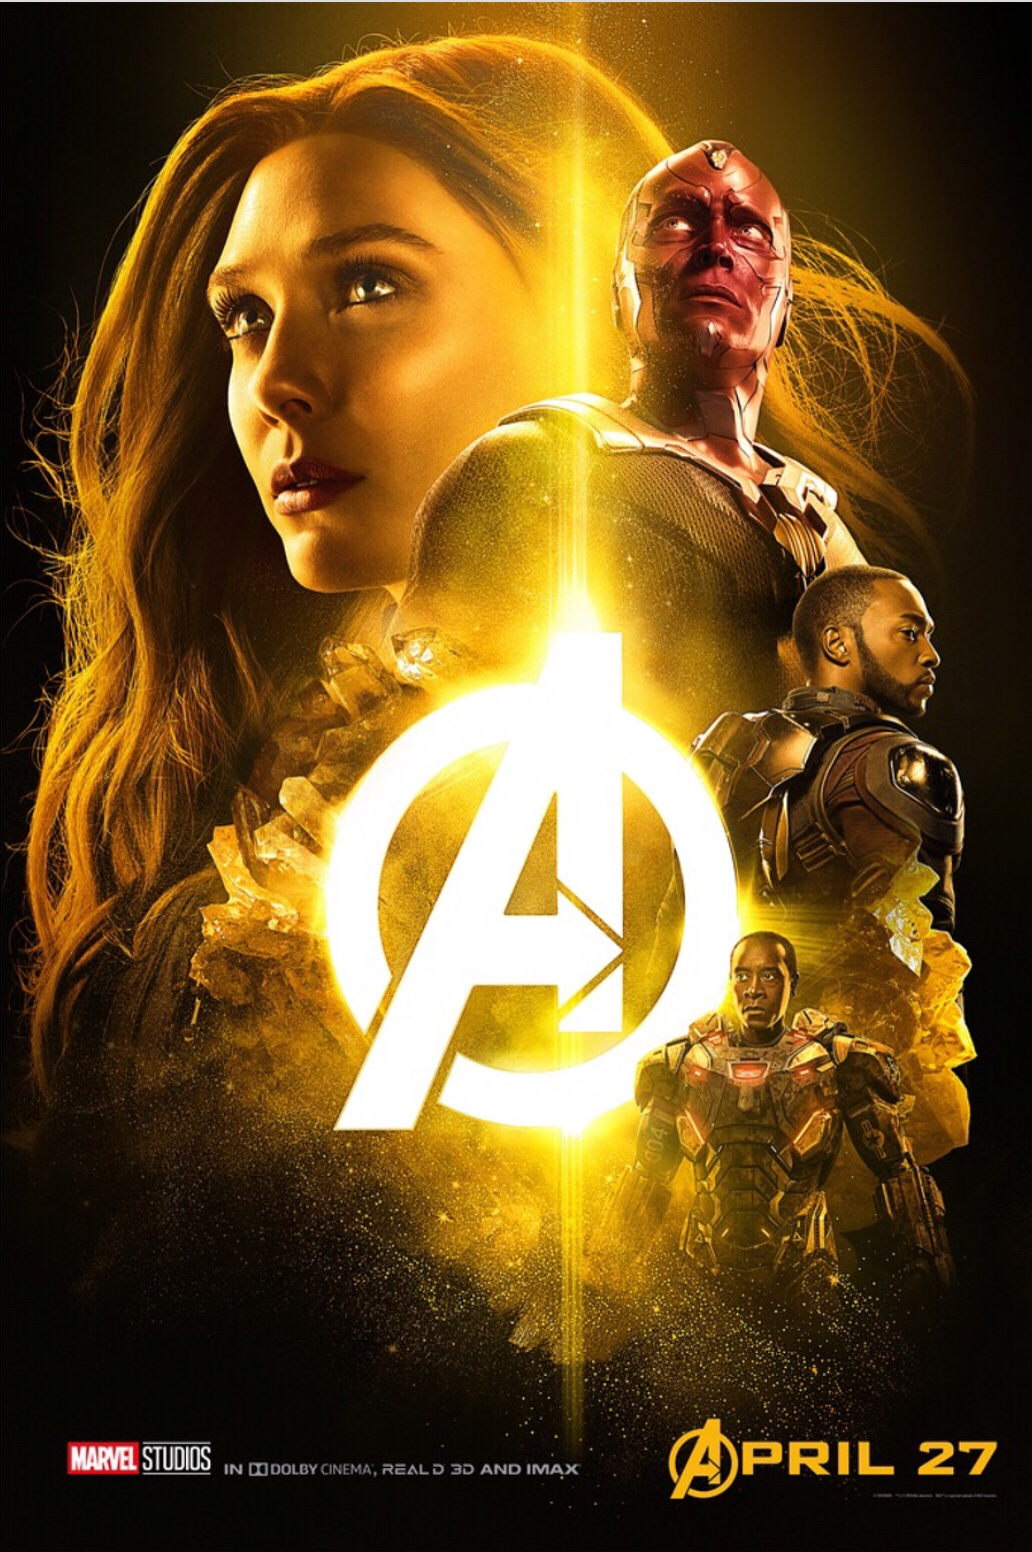 raychel-says-avengers-infinity-war-marvel-yellow-scarlet-witch-vision-american-solider